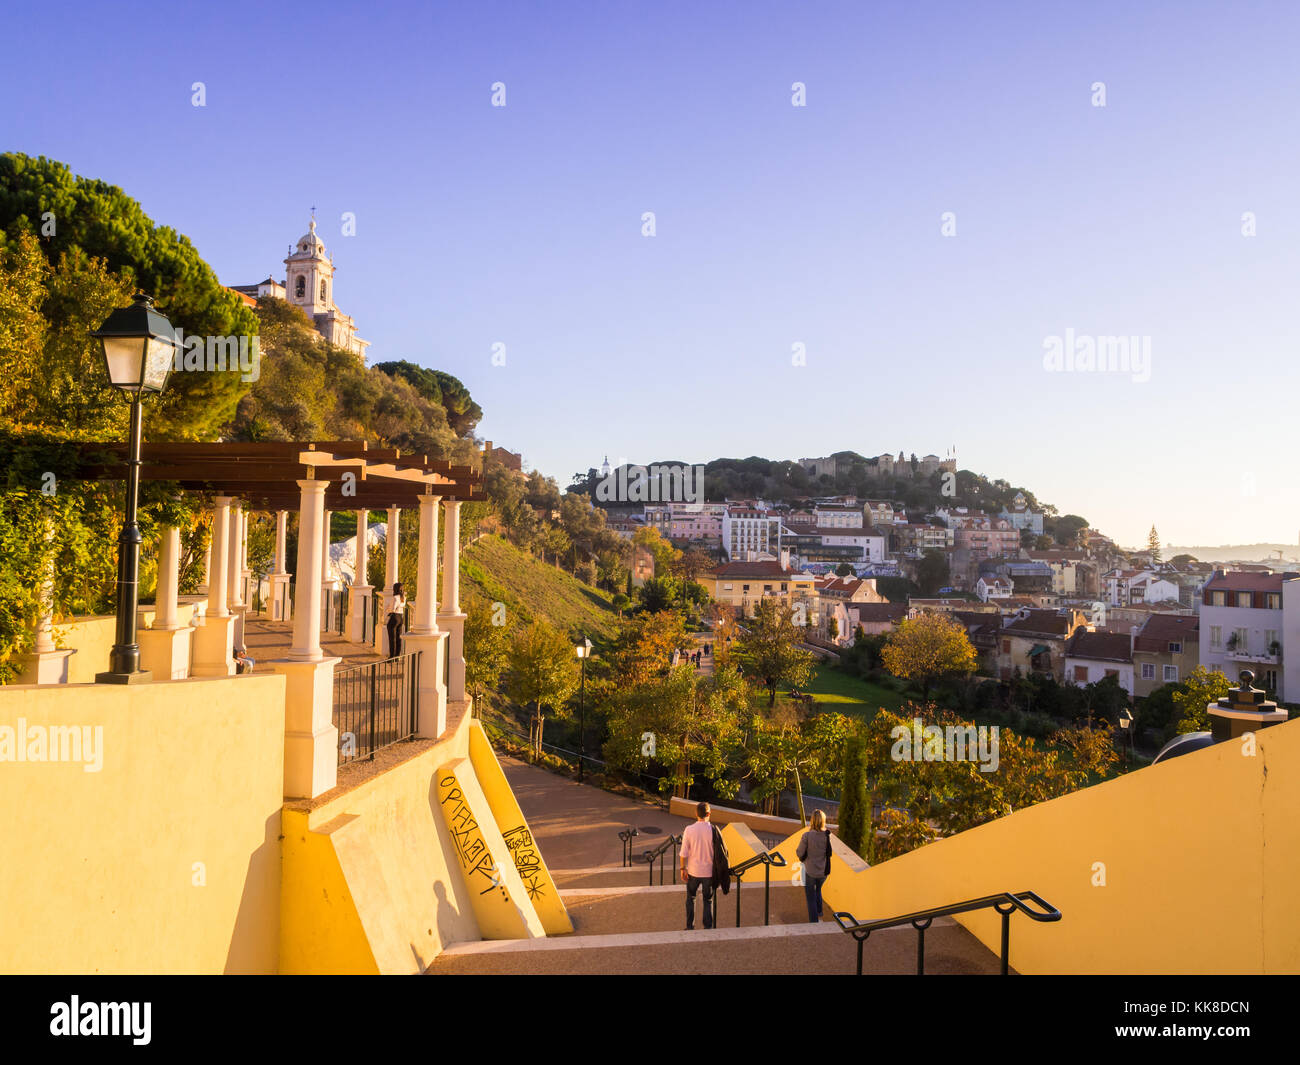 LISBON, PORTUGAL - NOVEMBER 19, 2017: Jardim da Cerca da Graca in Lisbon, Portugal, at sunset. Sao Jorge castle - Stock Image